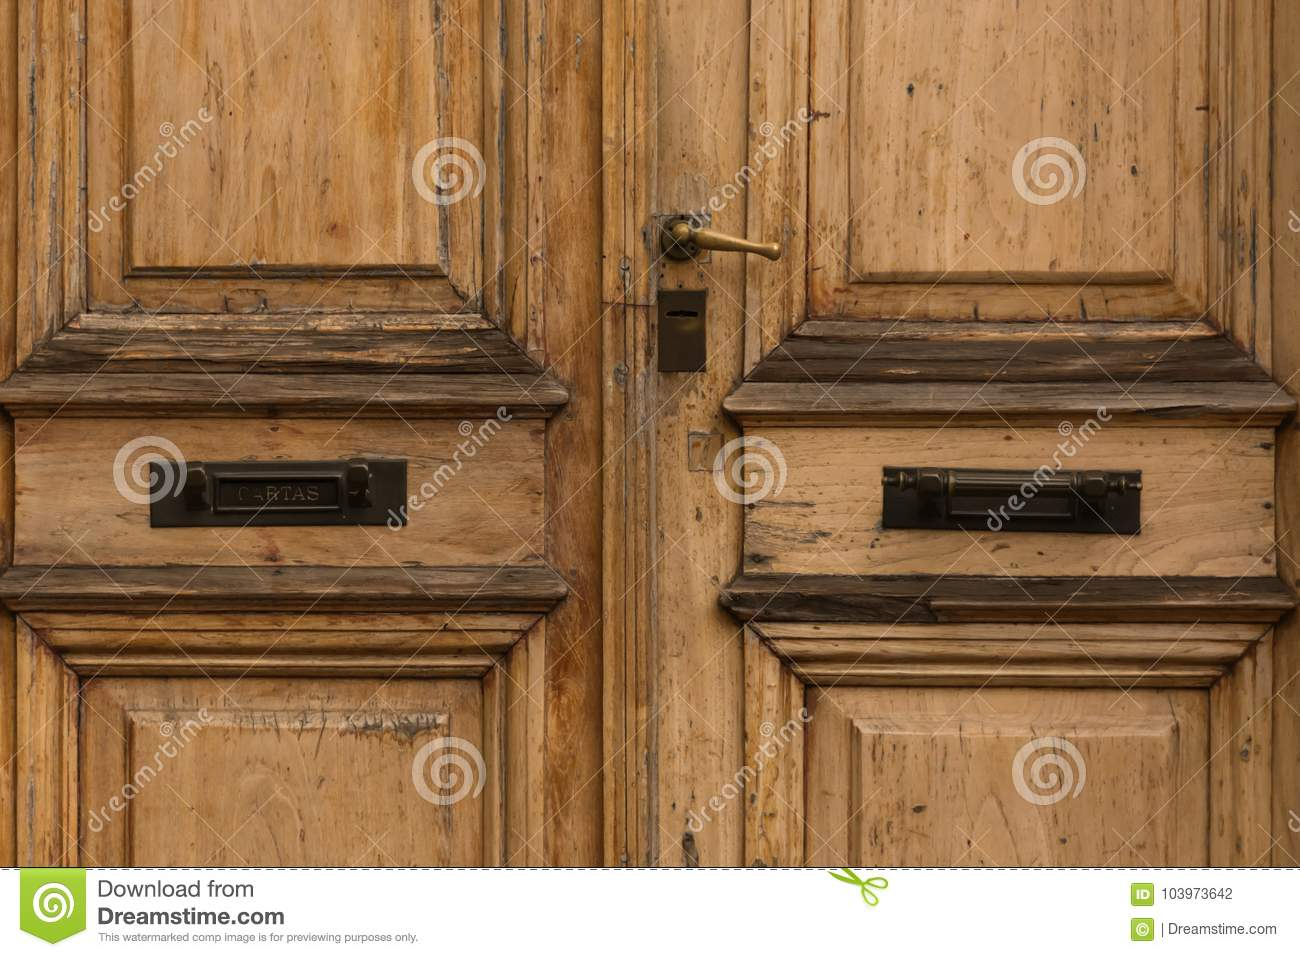 Double doors with mail slot - Double Doors With Mail Slot Stock Photo - Image Of Grunge, Antique